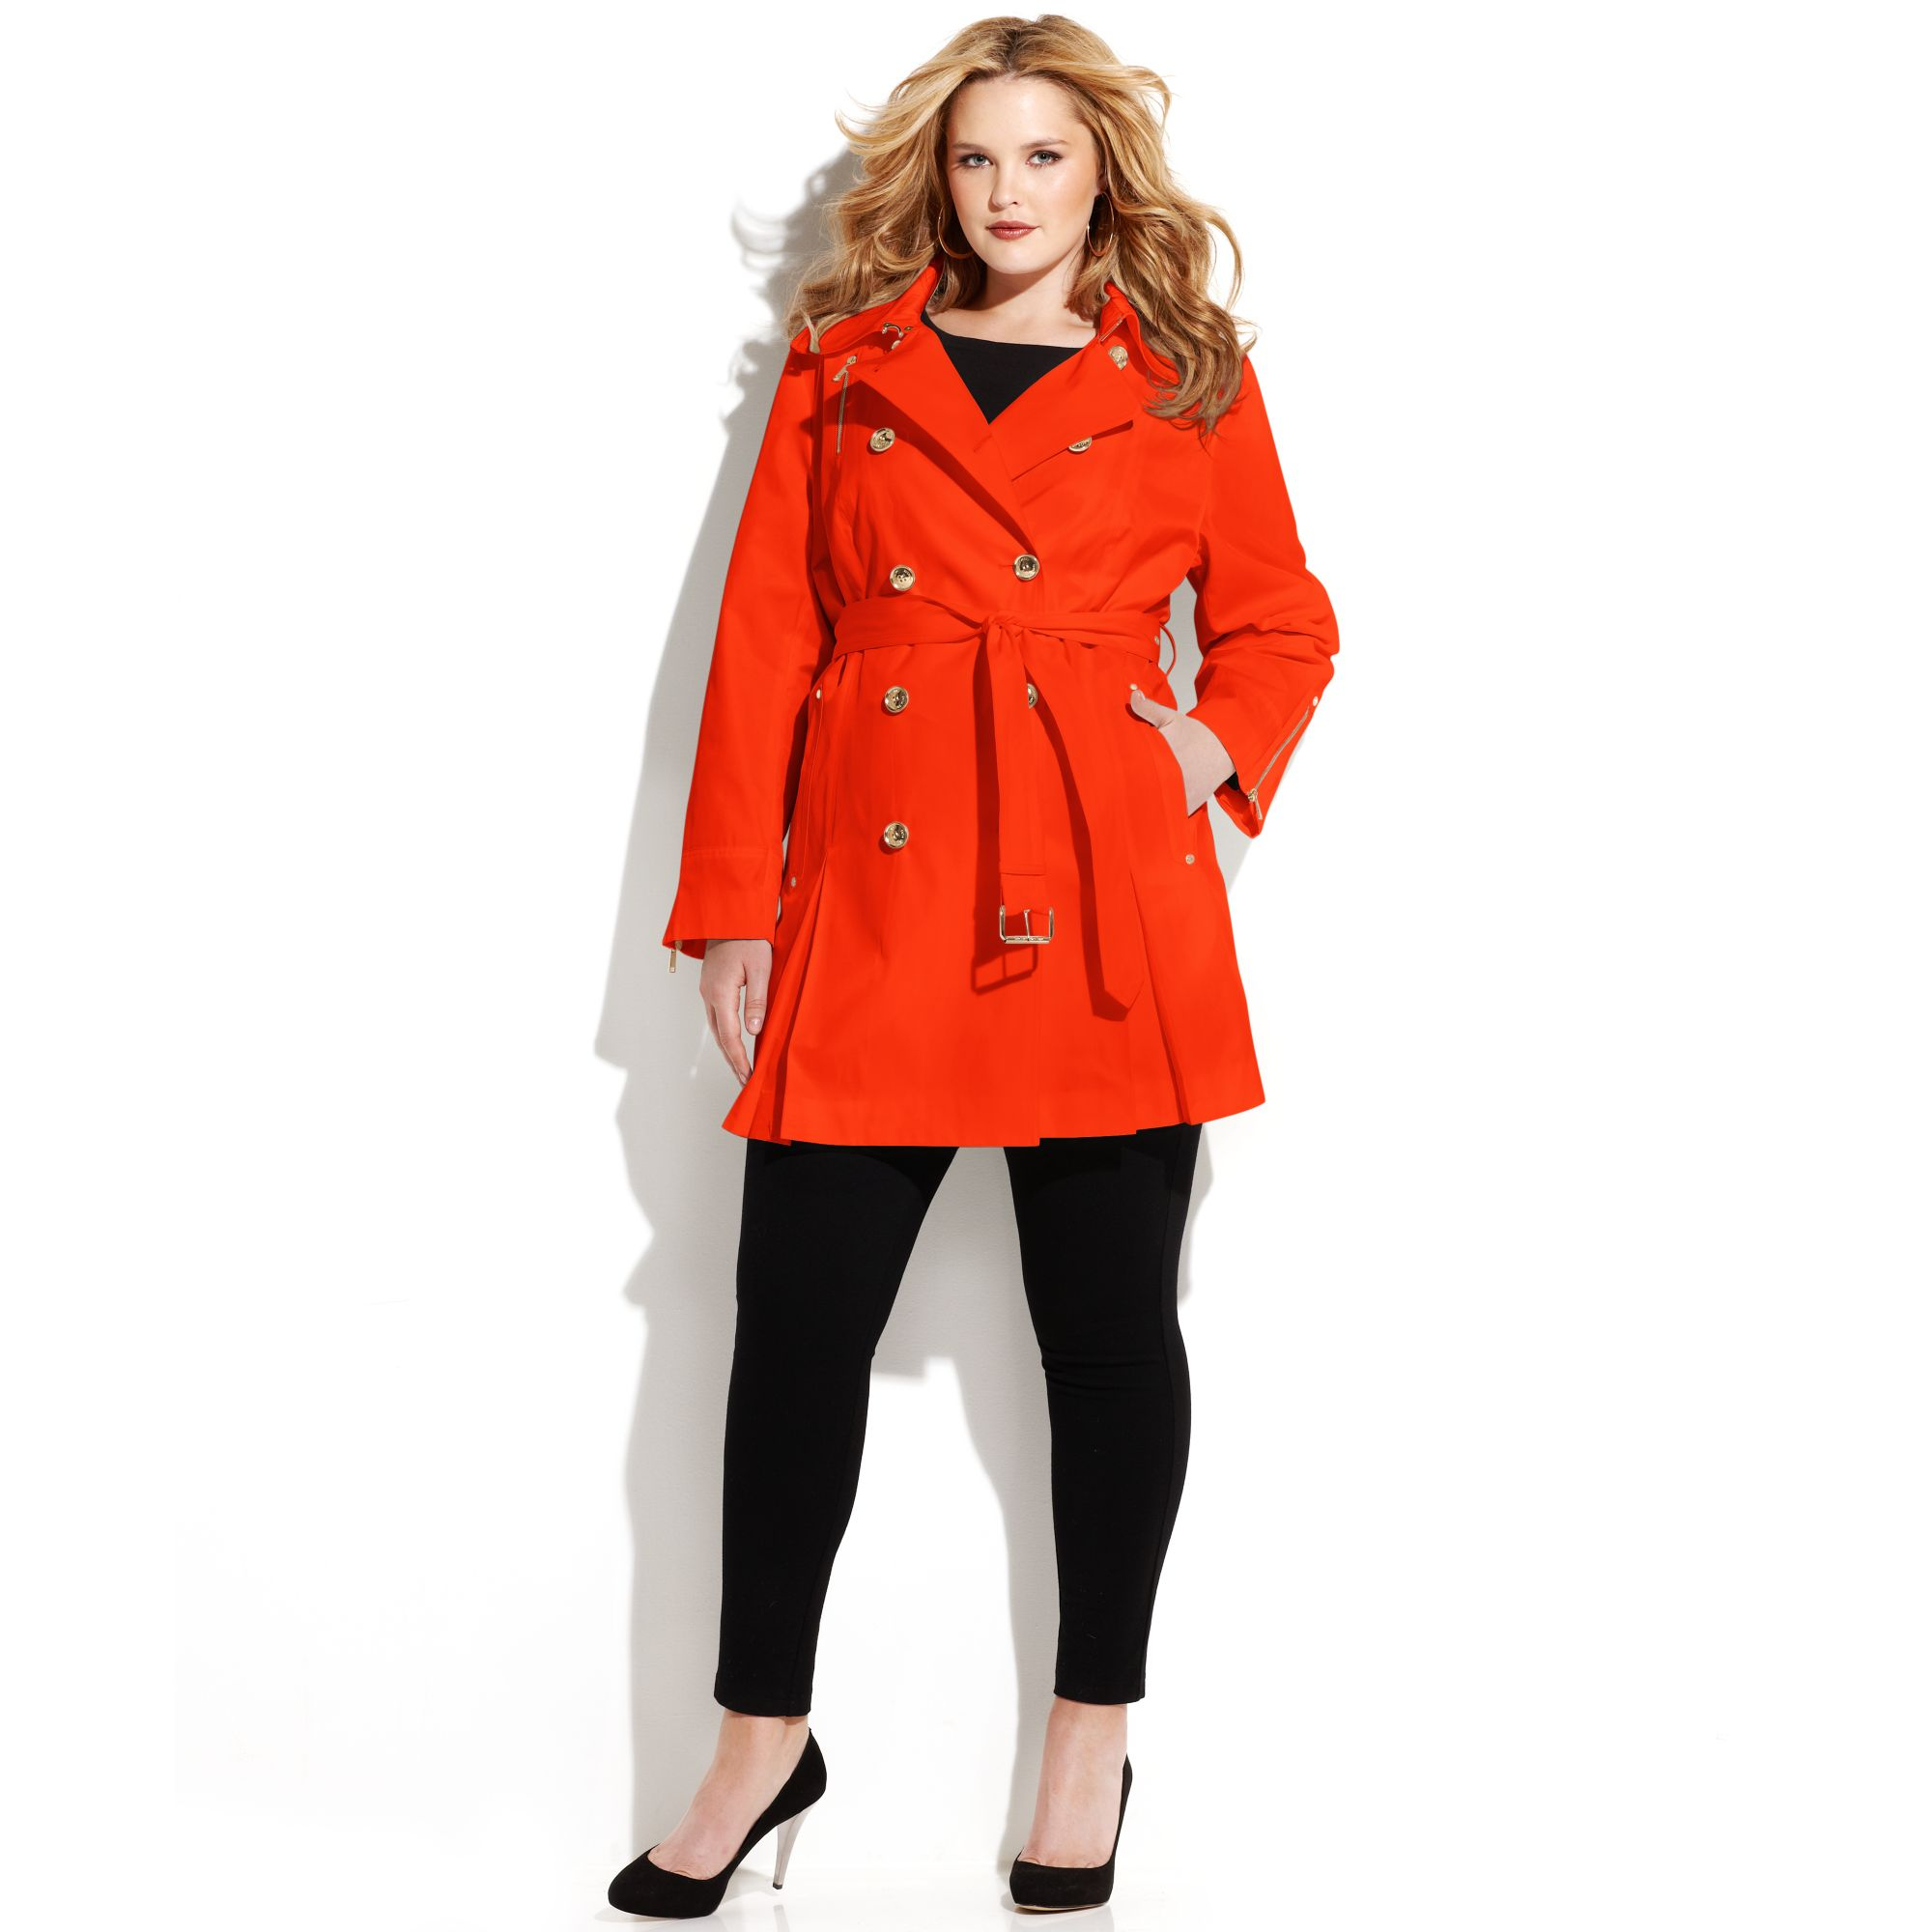 e38fb3e54df Michael Kors Plus Size Double Breasted Belted Trench Coat in Red - Lyst